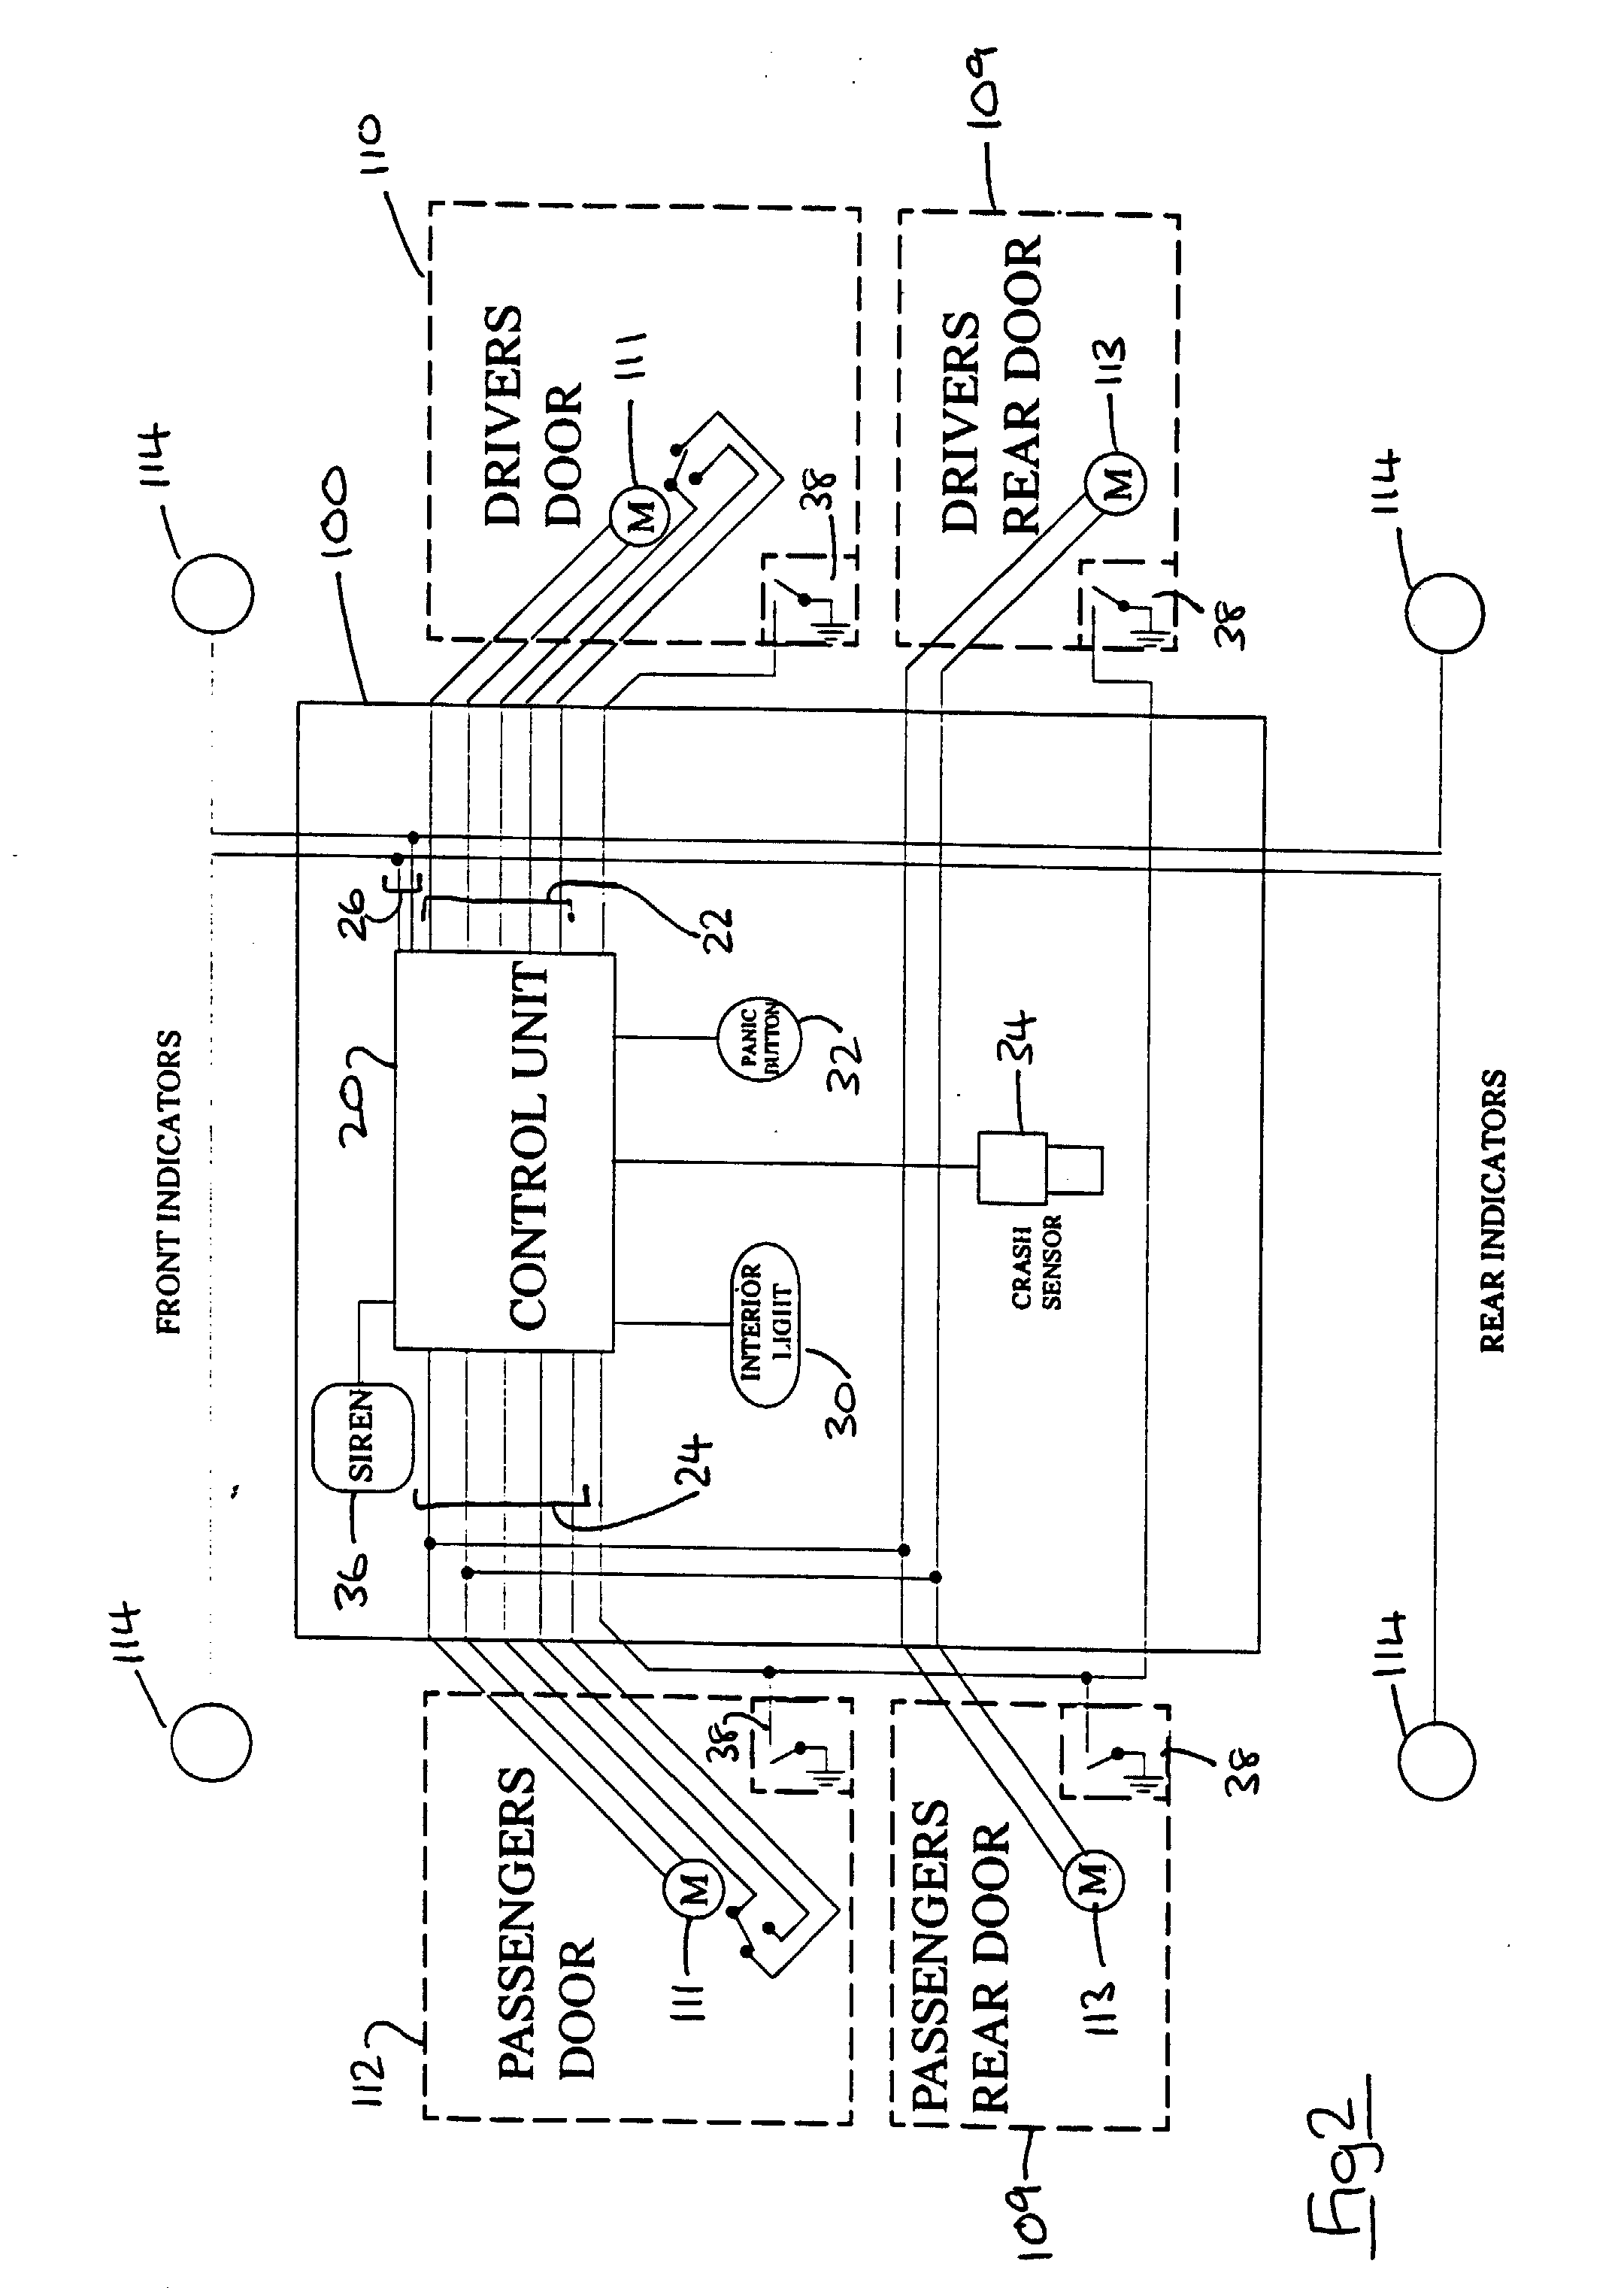 Wiring Diagram For Toad Alarm on alarm wiring tools, alarm wiring guide, alarm wiring symbols, alarm cable, alarm horn, alarm valve, car alarm diagram, vehicle alarm system diagram, fire suppression diagram, alarm wiring circuit, alarm circuit diagram, prox switch diagram, alarm panel wiring, alarm switch diagram, alarm installation diagram, 4 wire proximity diagram,